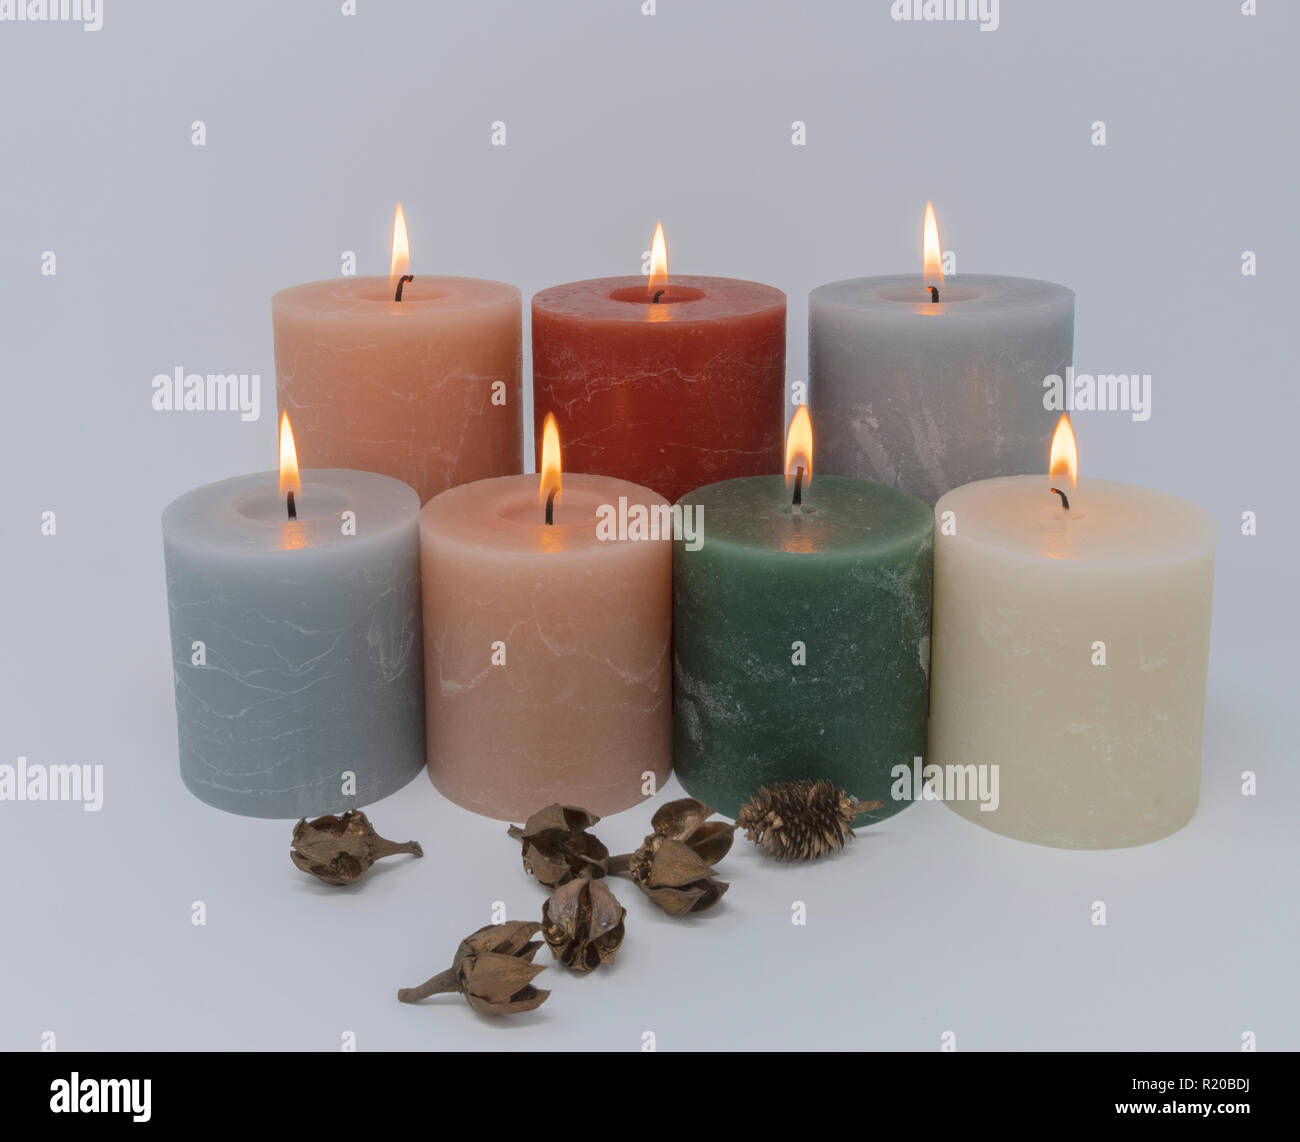 Aromatic and decorative round candles - Stock Image